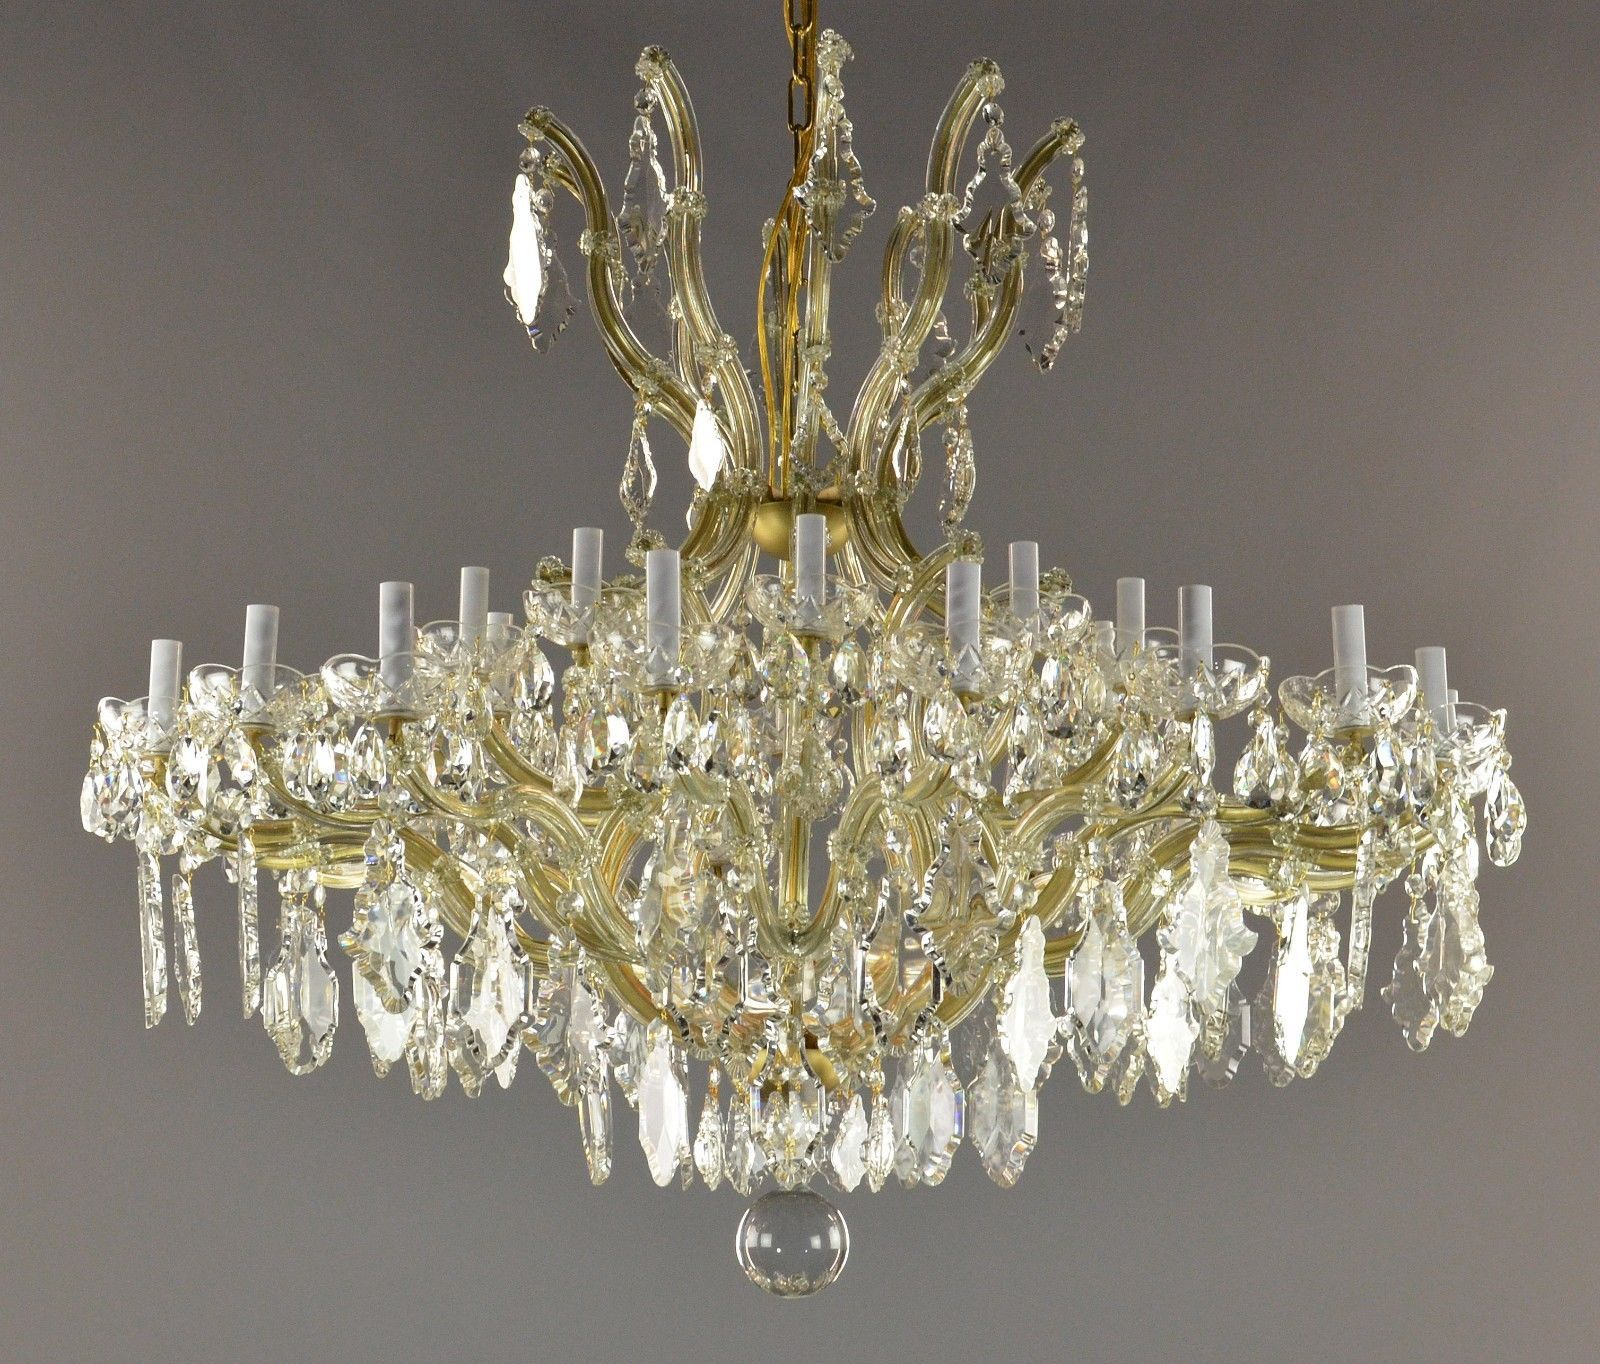 Marie therese crystal brass chandelier c1940 offered here is a marie therese crystal brass chandelier c1940 offered here is a very large vintage marie therese crystal chandelier made in italy around the 1940s mozeypictures Gallery